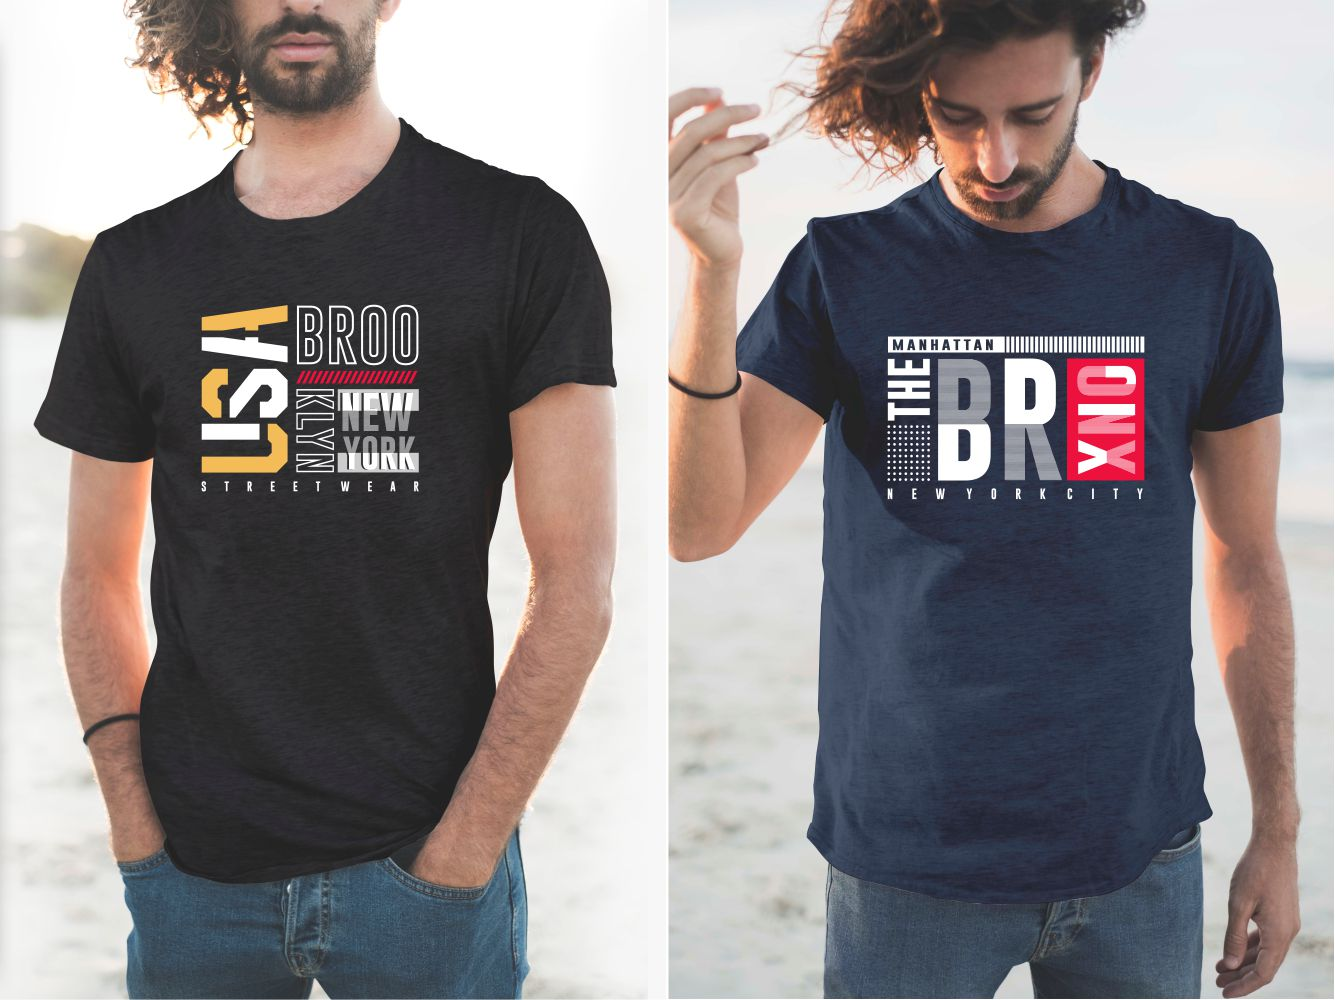 Blue and black T-shirts with various Bronx lettering.